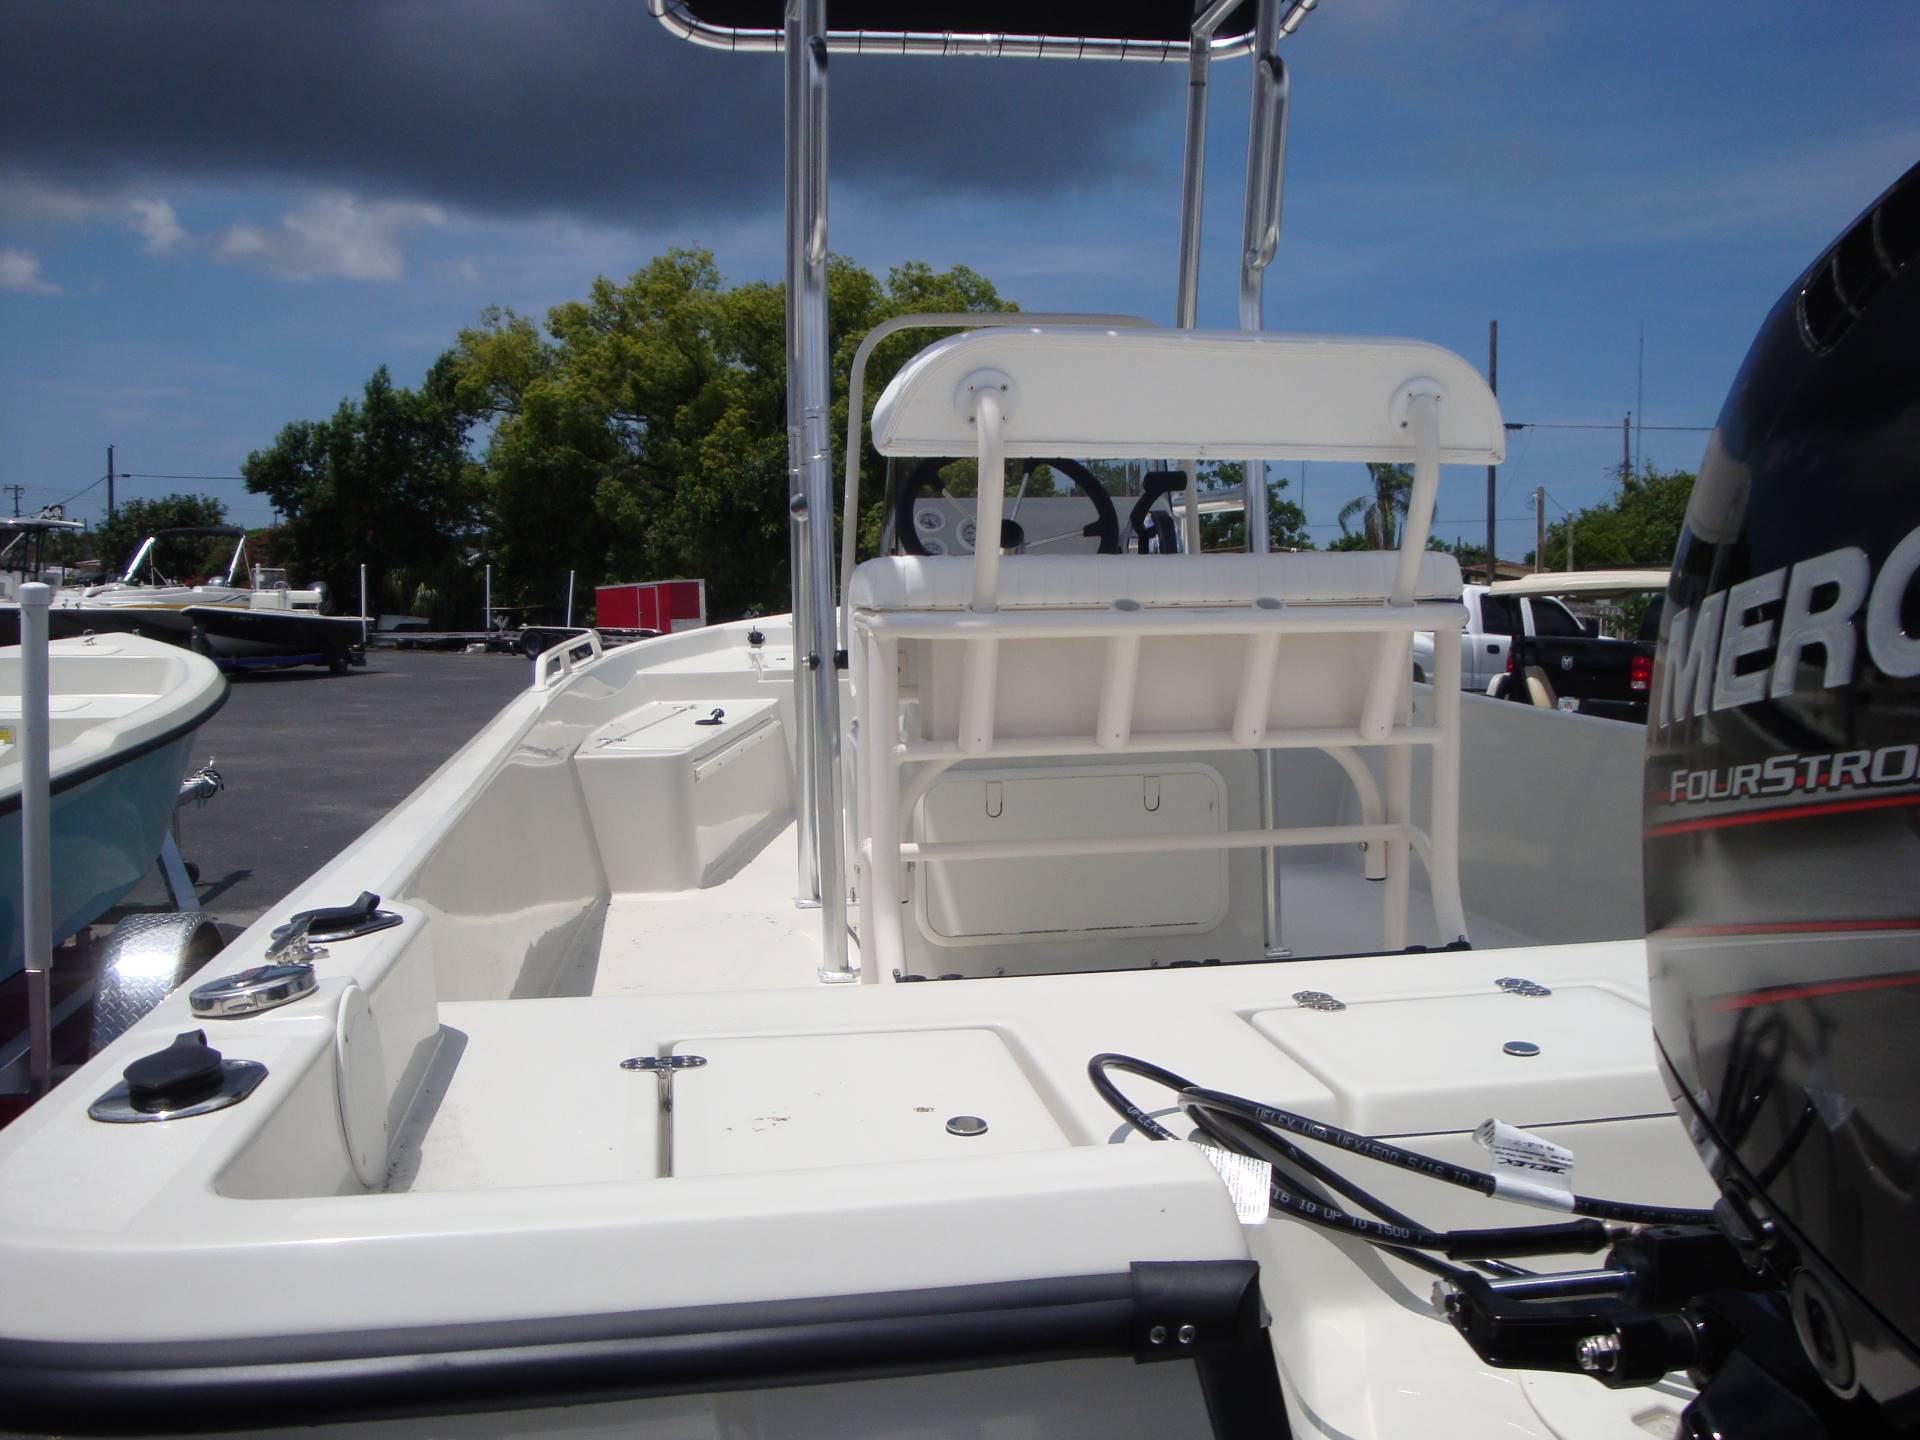 2019 Stott Craft SCV2160 in Holiday, Florida - Photo 14